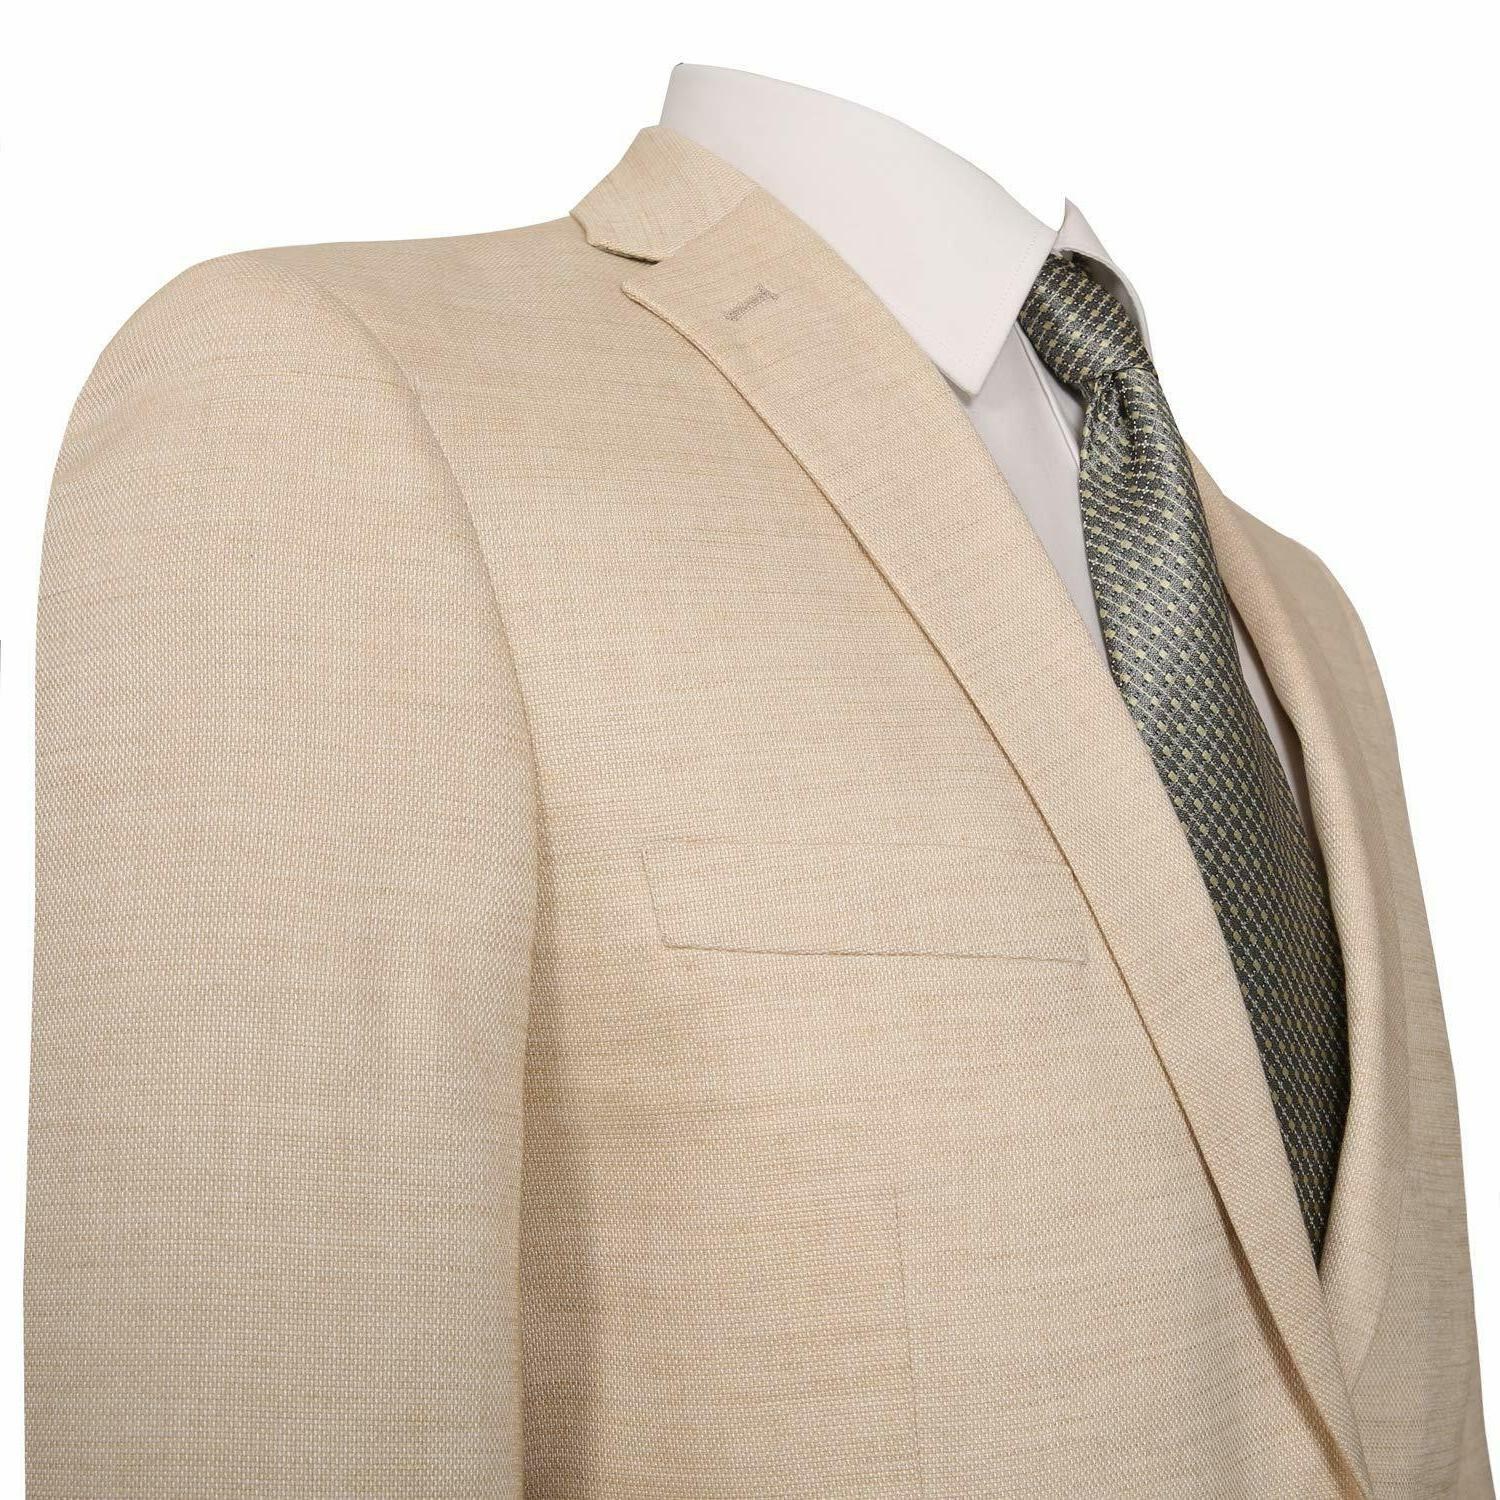 P&L Two-Button Suit Jacket